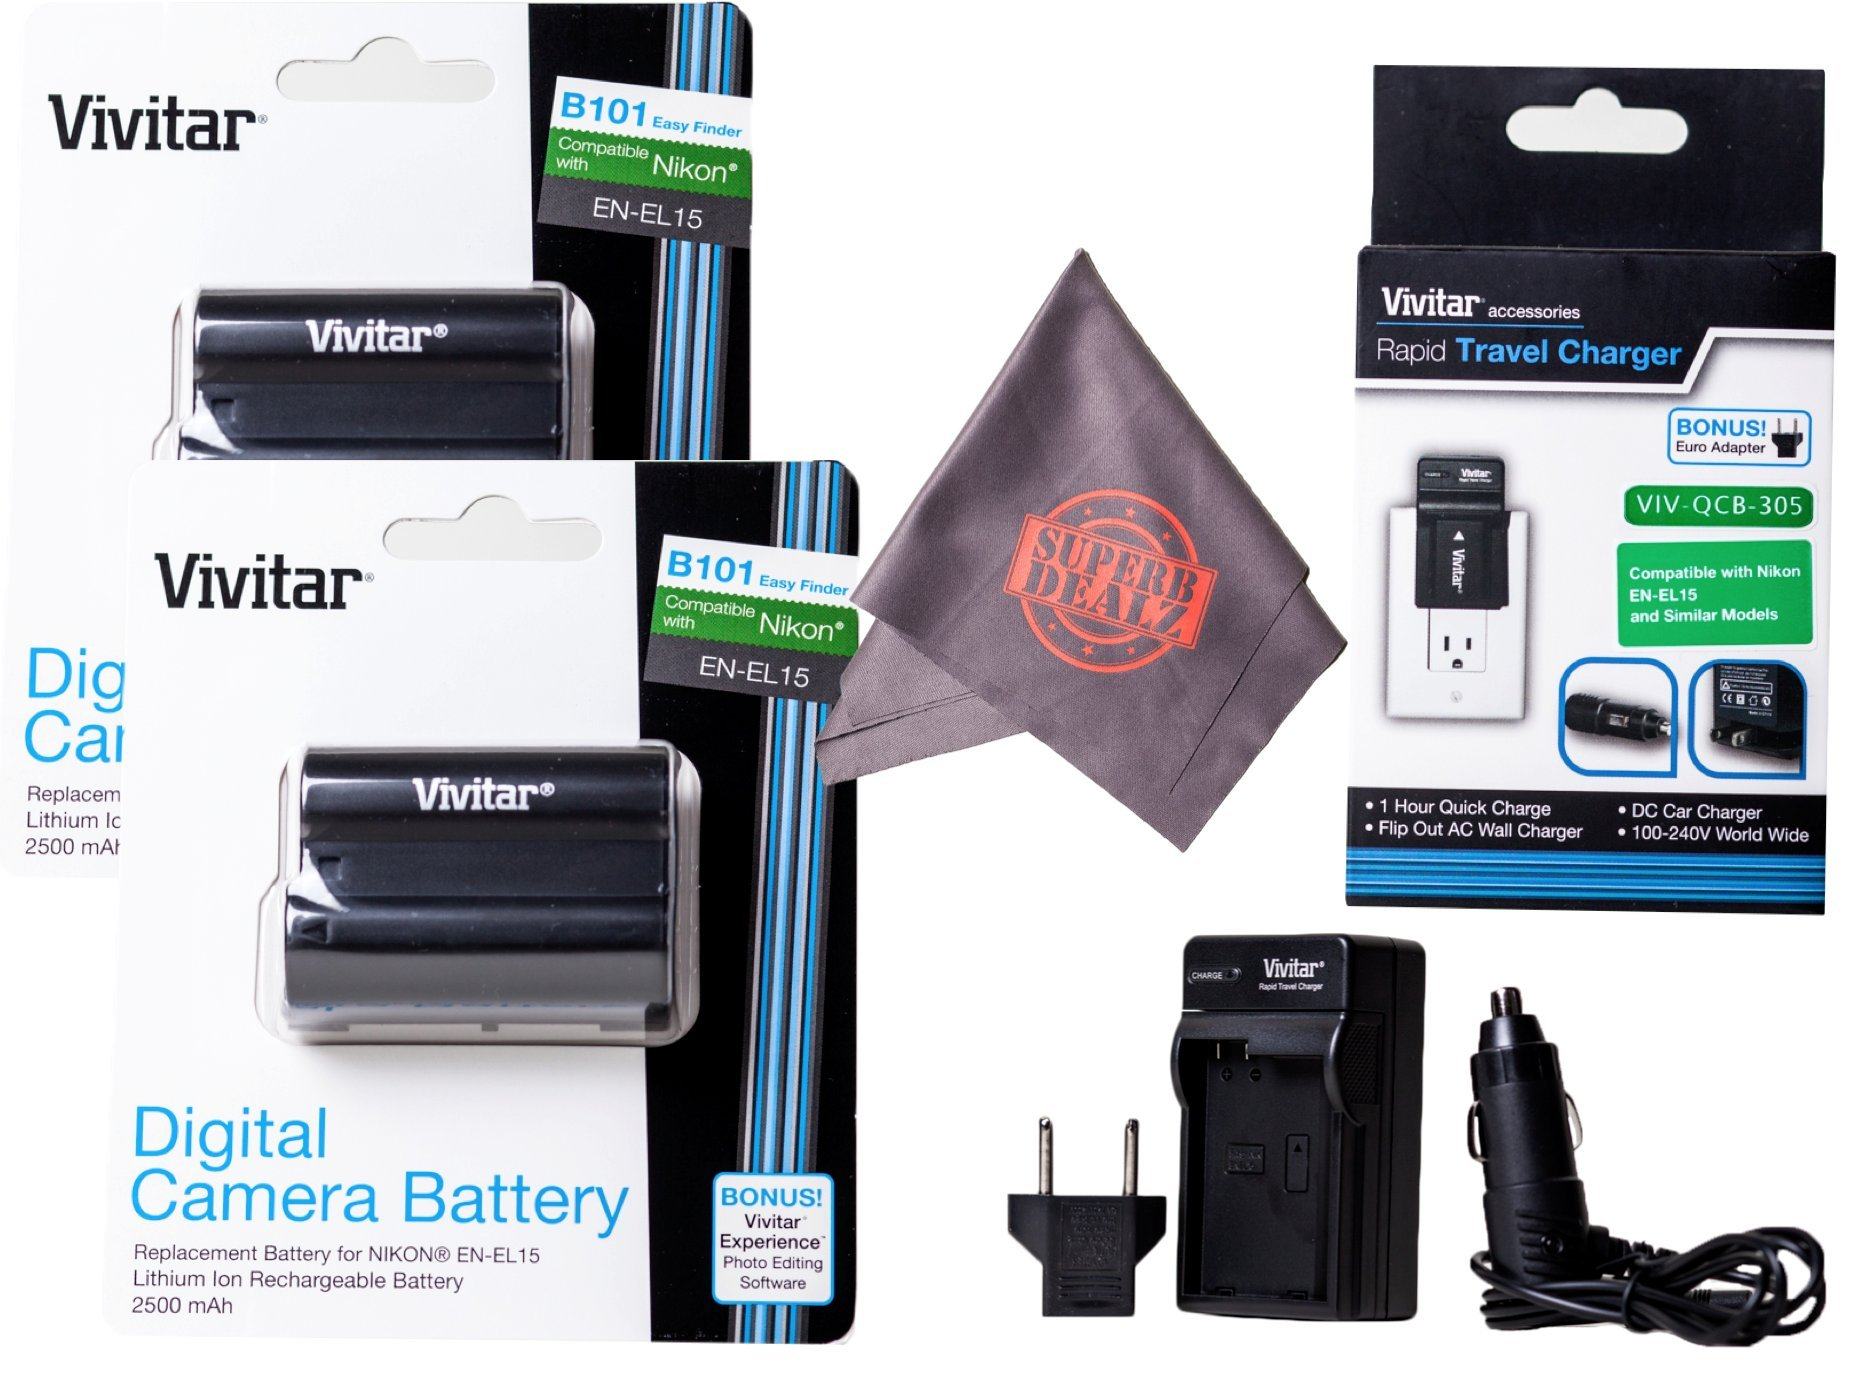 2 Pack of Vivitar EN-EL15 Ultra High Capacity 2500mAh Li-ion + AC/DC Vivitar Rapid Travel Charger + Microfiber Lens Cleaning Cloth EL15 ENEL15 (Nikon EN-EL15 Replacement) by Vivitar